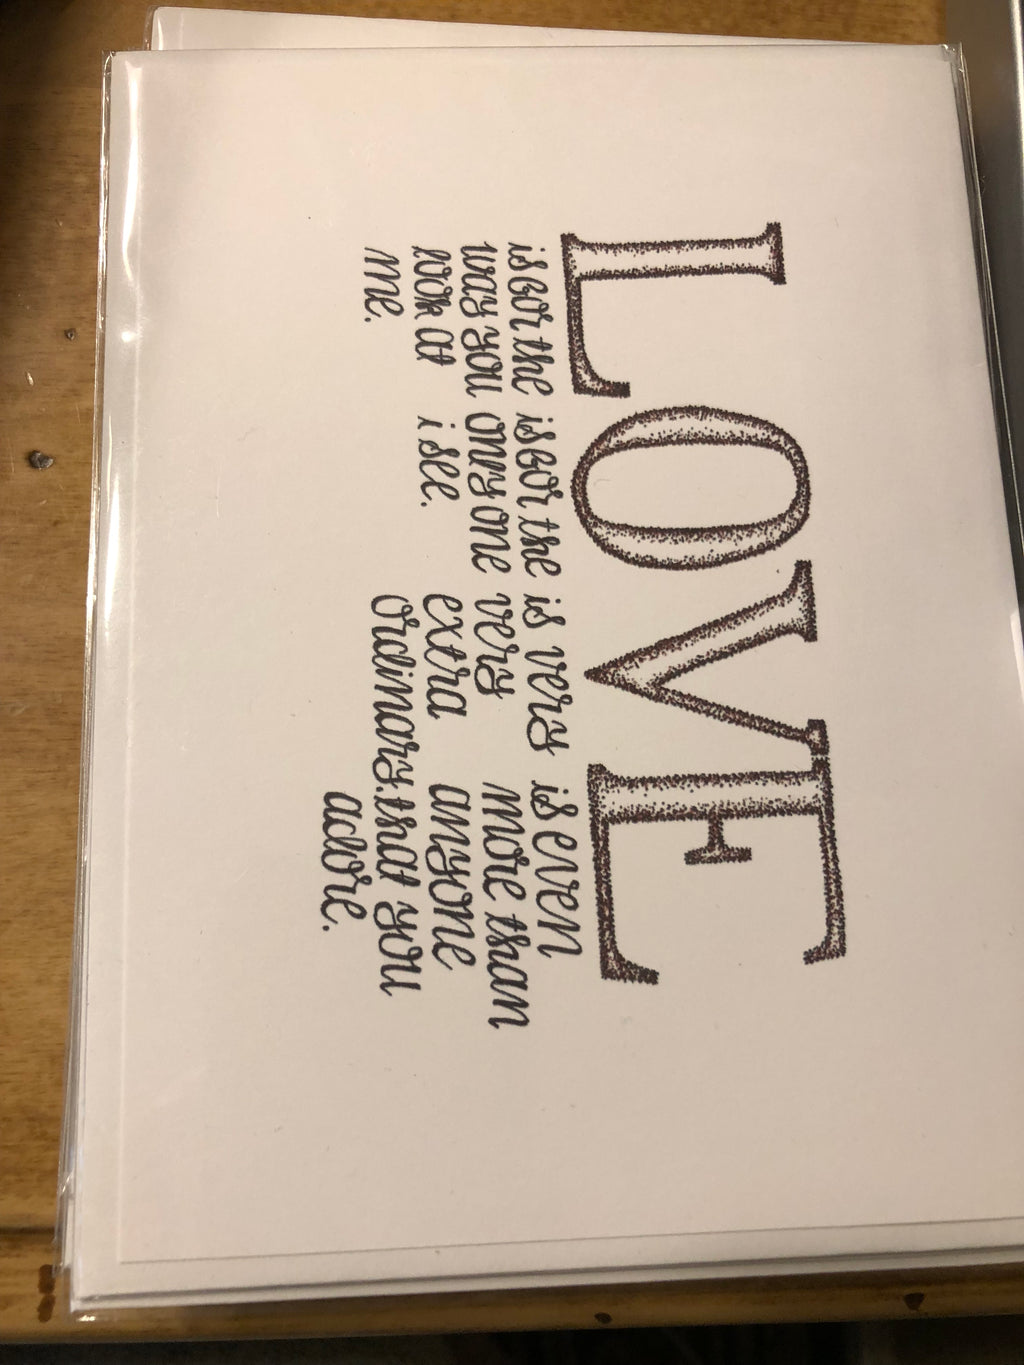 L-O-V-E Greeting Card, designed by Jess Kennedy - thecodexclub